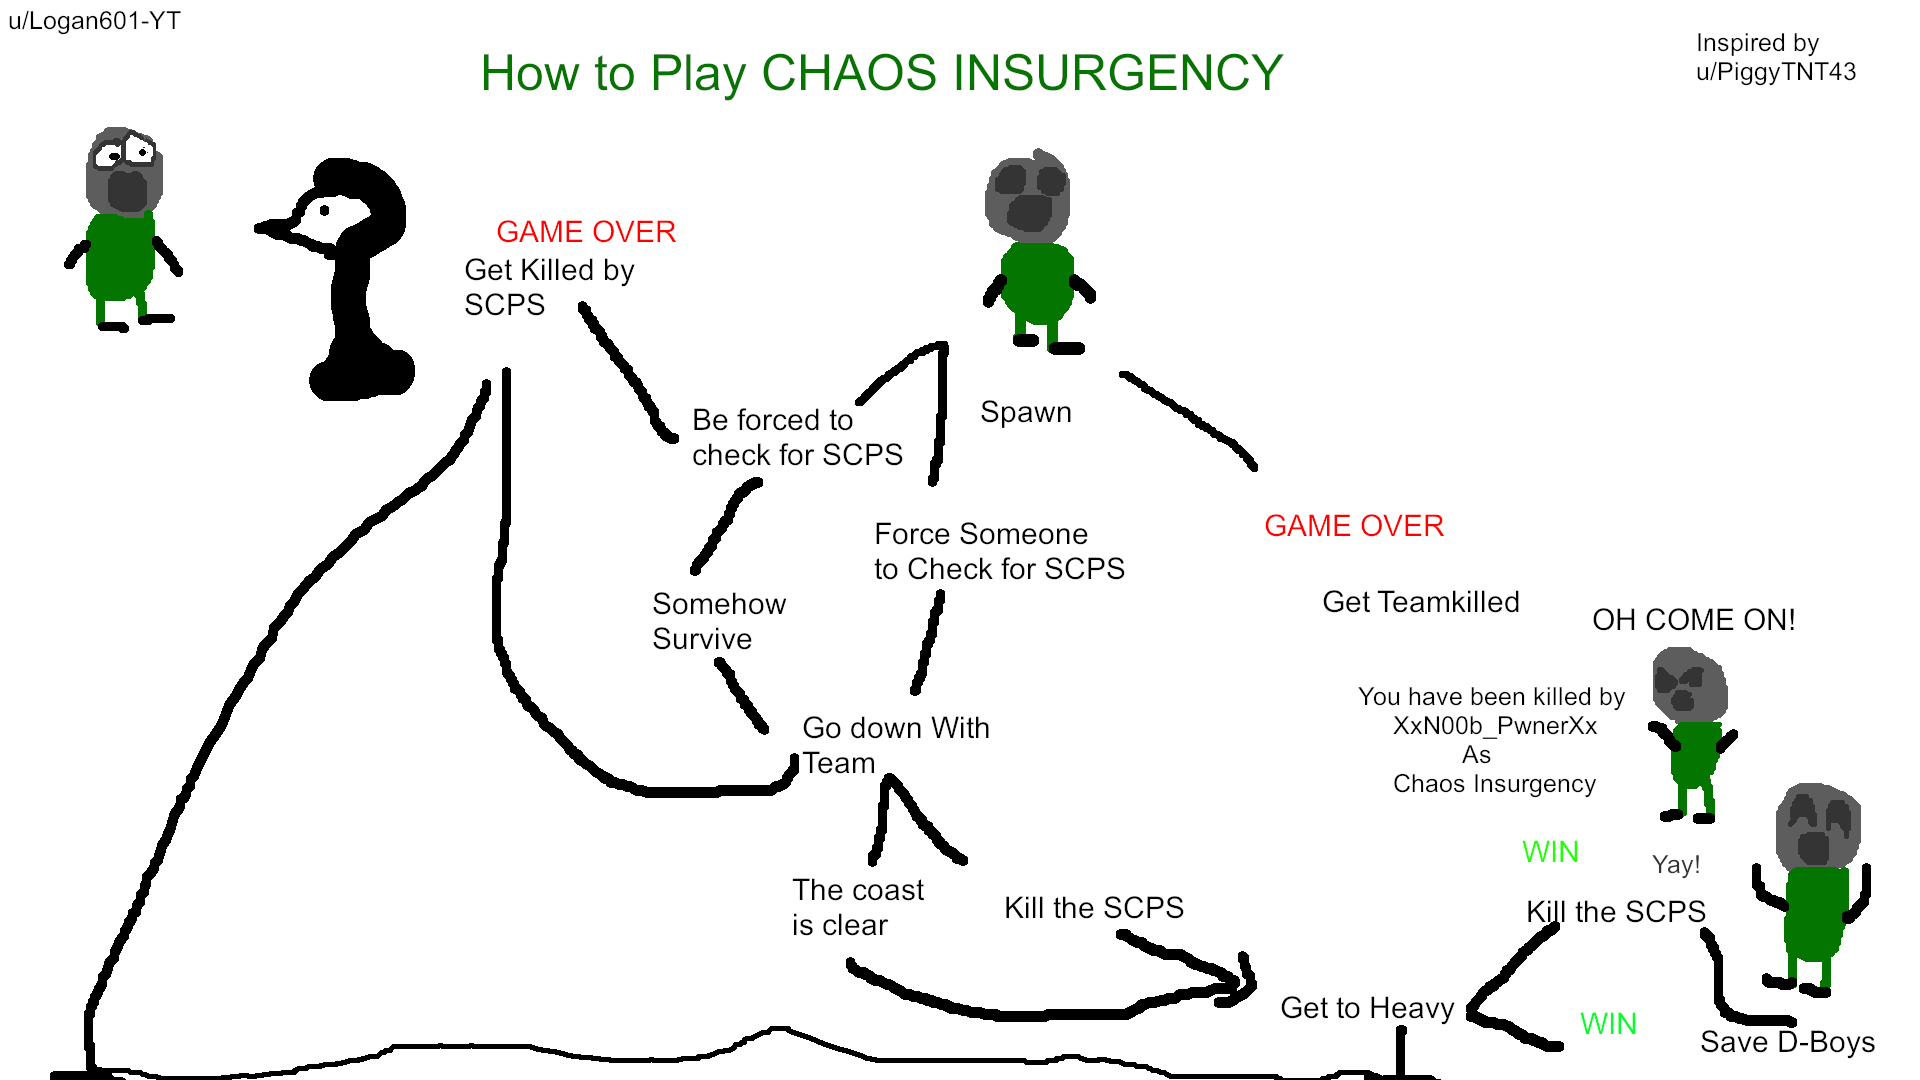 [Guide] How to play Chaos Insurgency (Please check out the